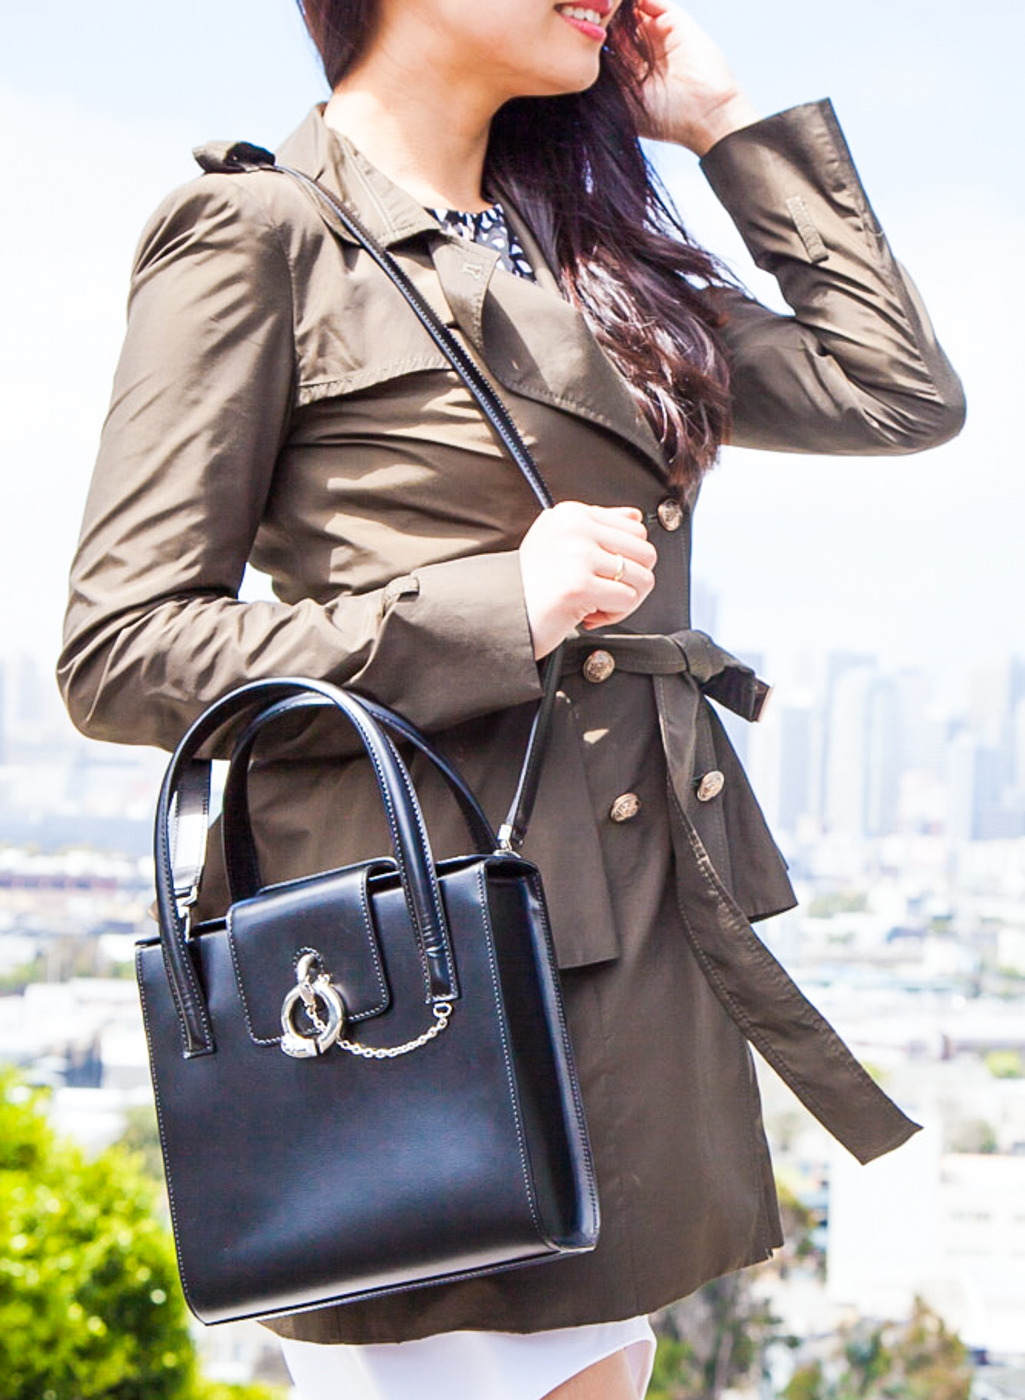 Olive trench coat and structured Cartier bag